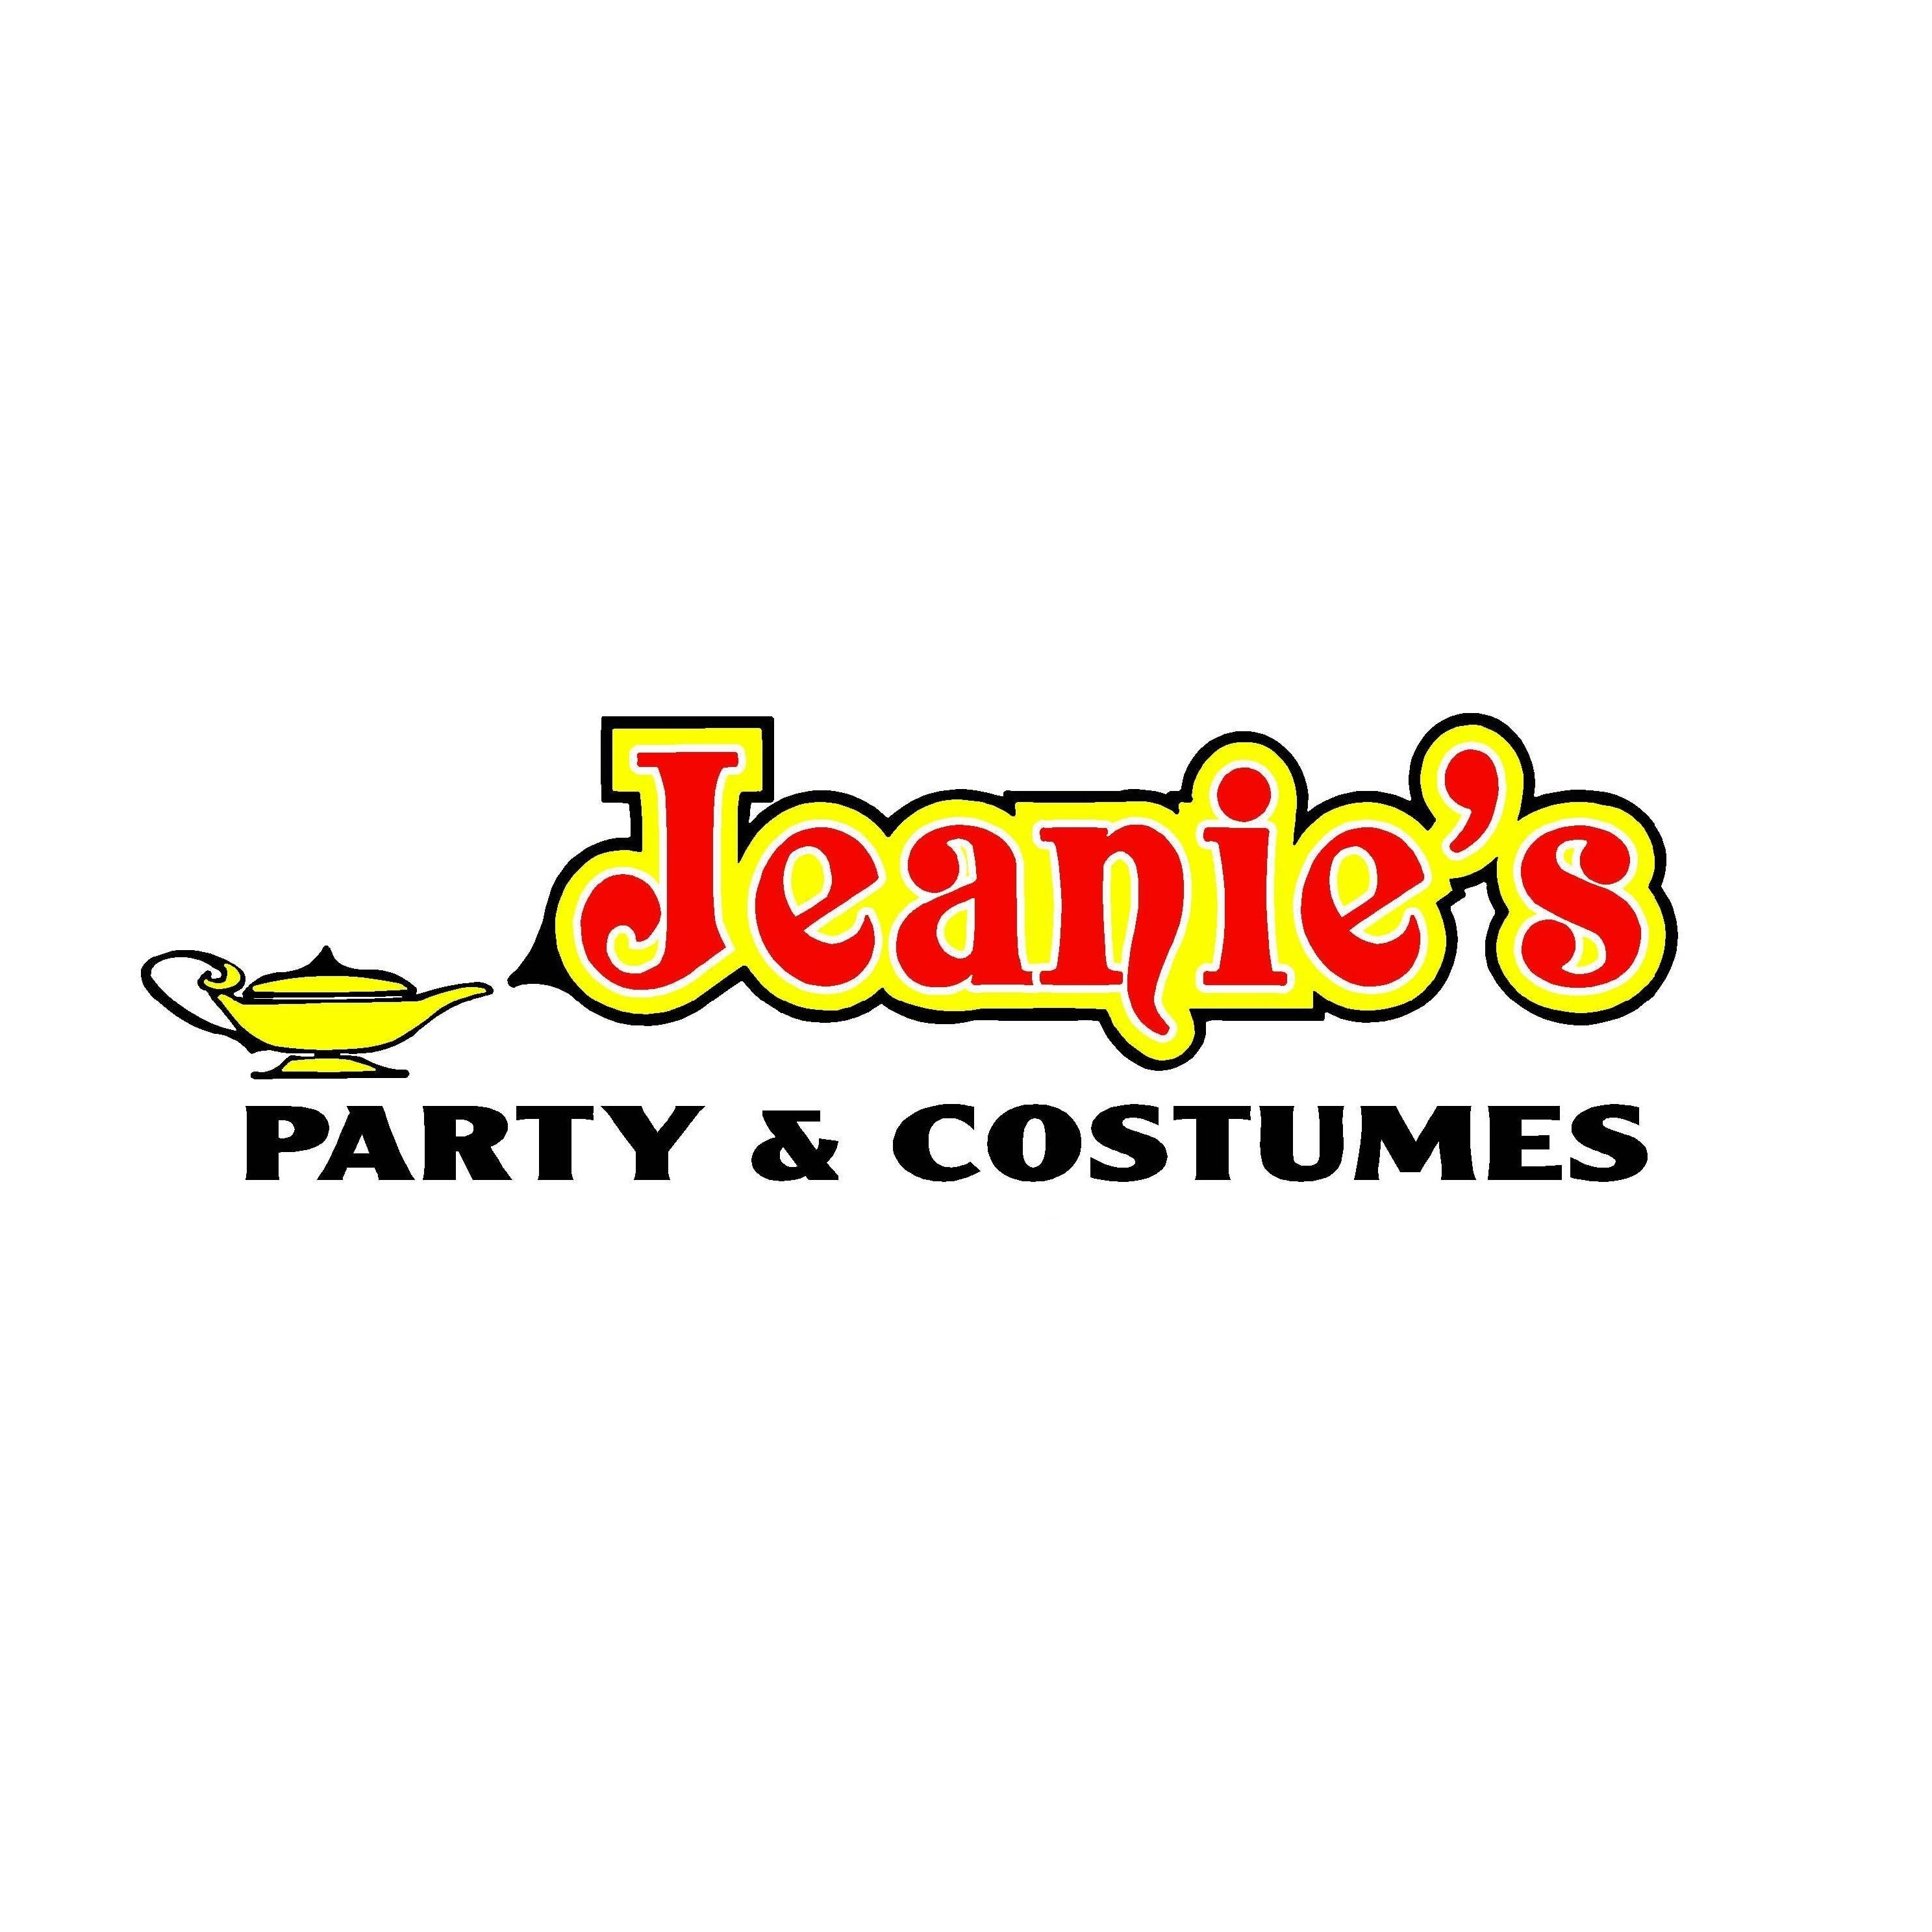 Jeanie's Party & Costumes